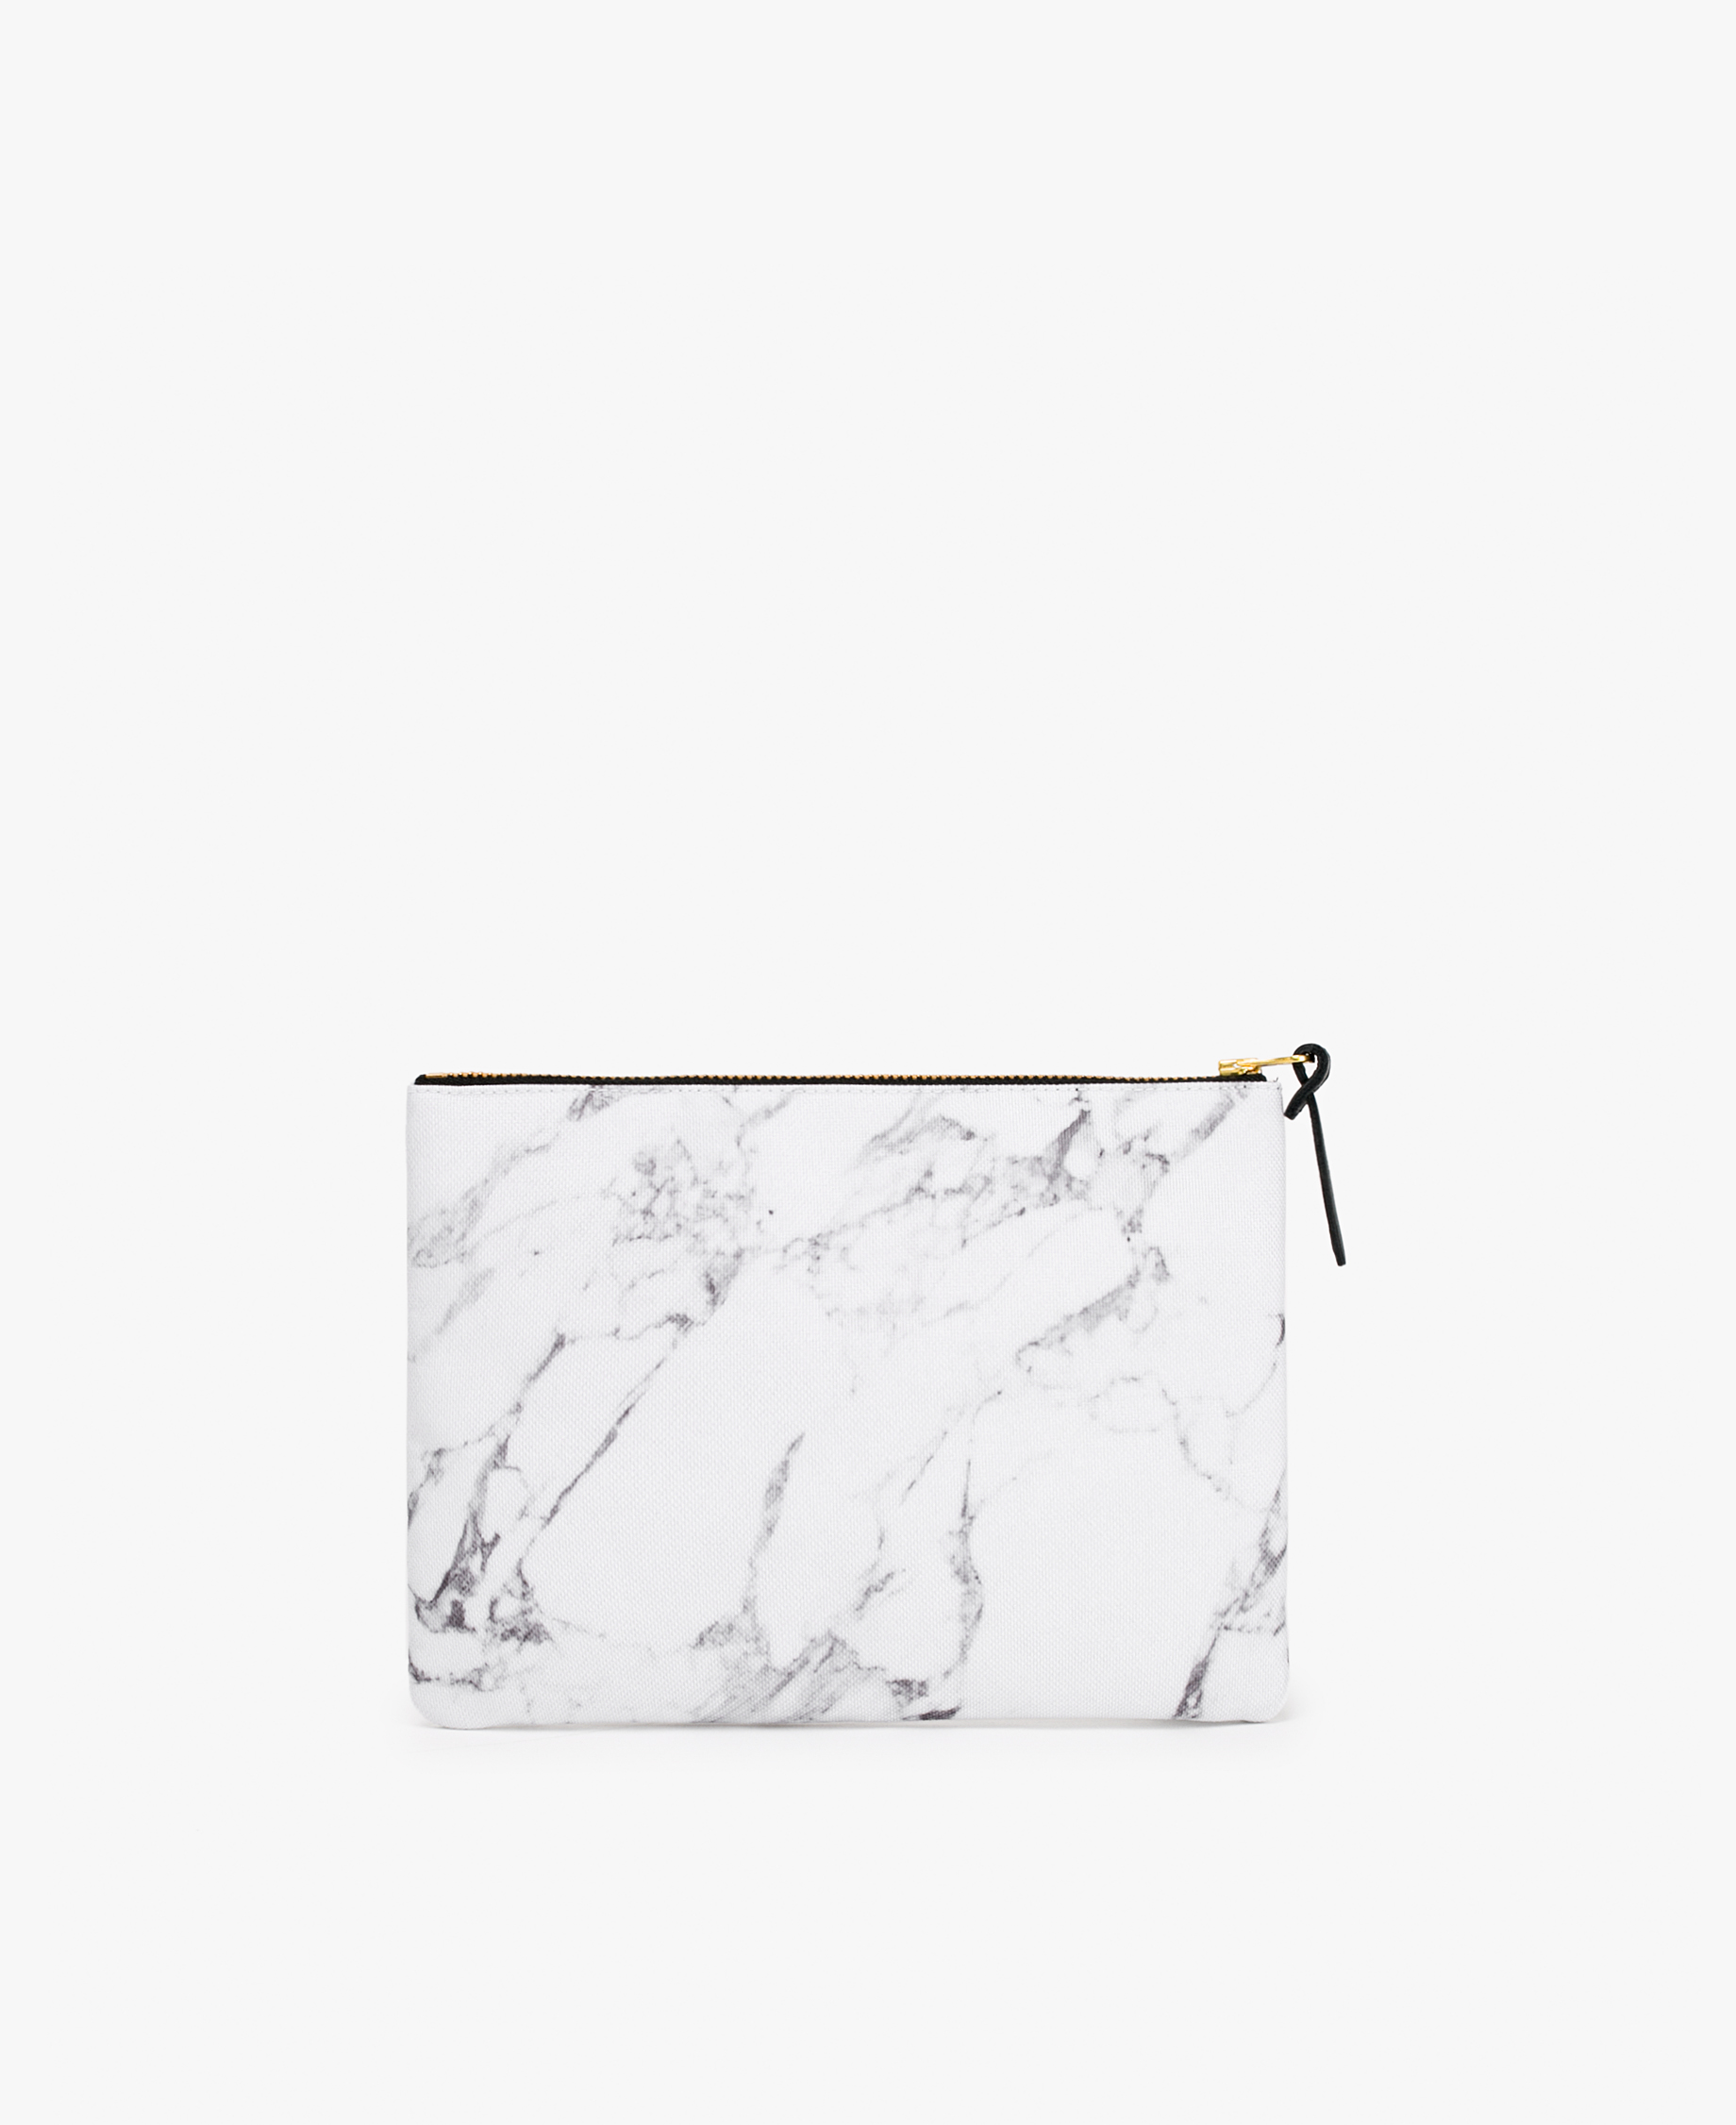 woman's large white pouch bag